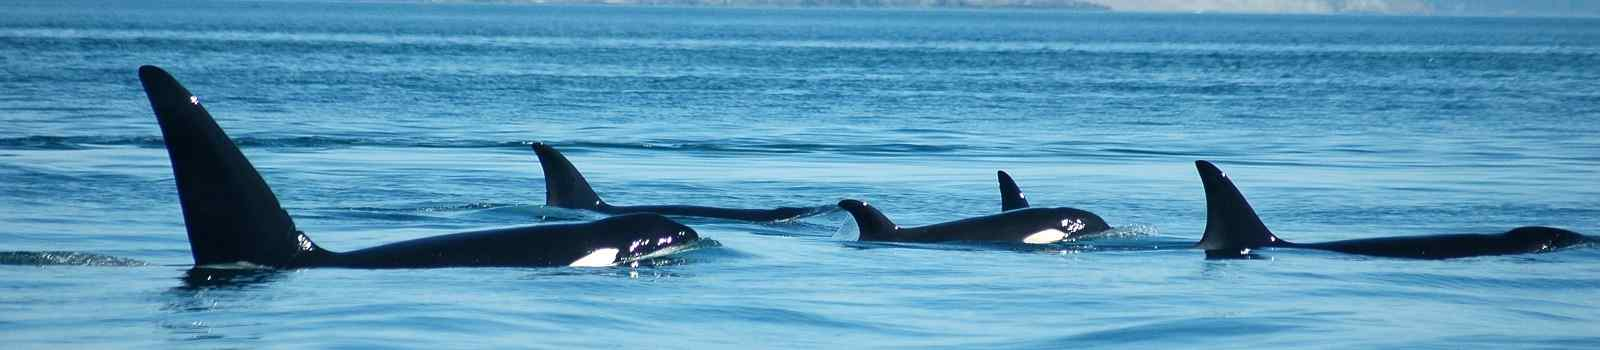 -Kanada Vancouver Island A group of transient (marine mammal feeding) orcas surfaces together, with San Juan Island